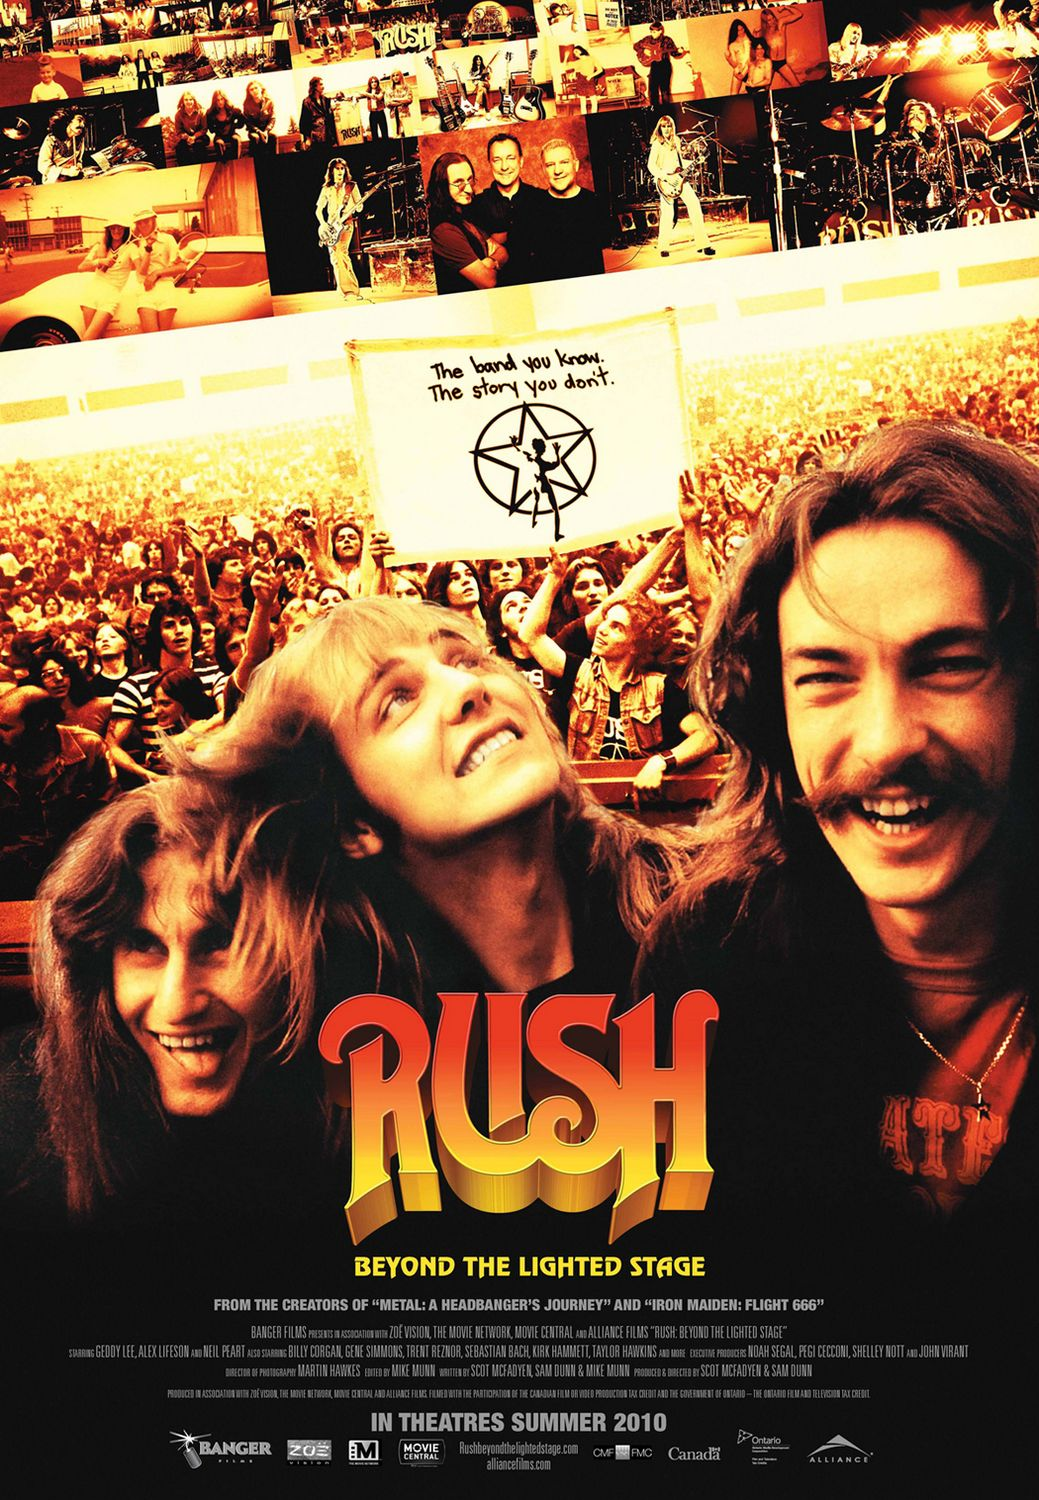 ¿Documentales de/sobre rock? - Página 2 Rush-beyond-the-lighted-stage